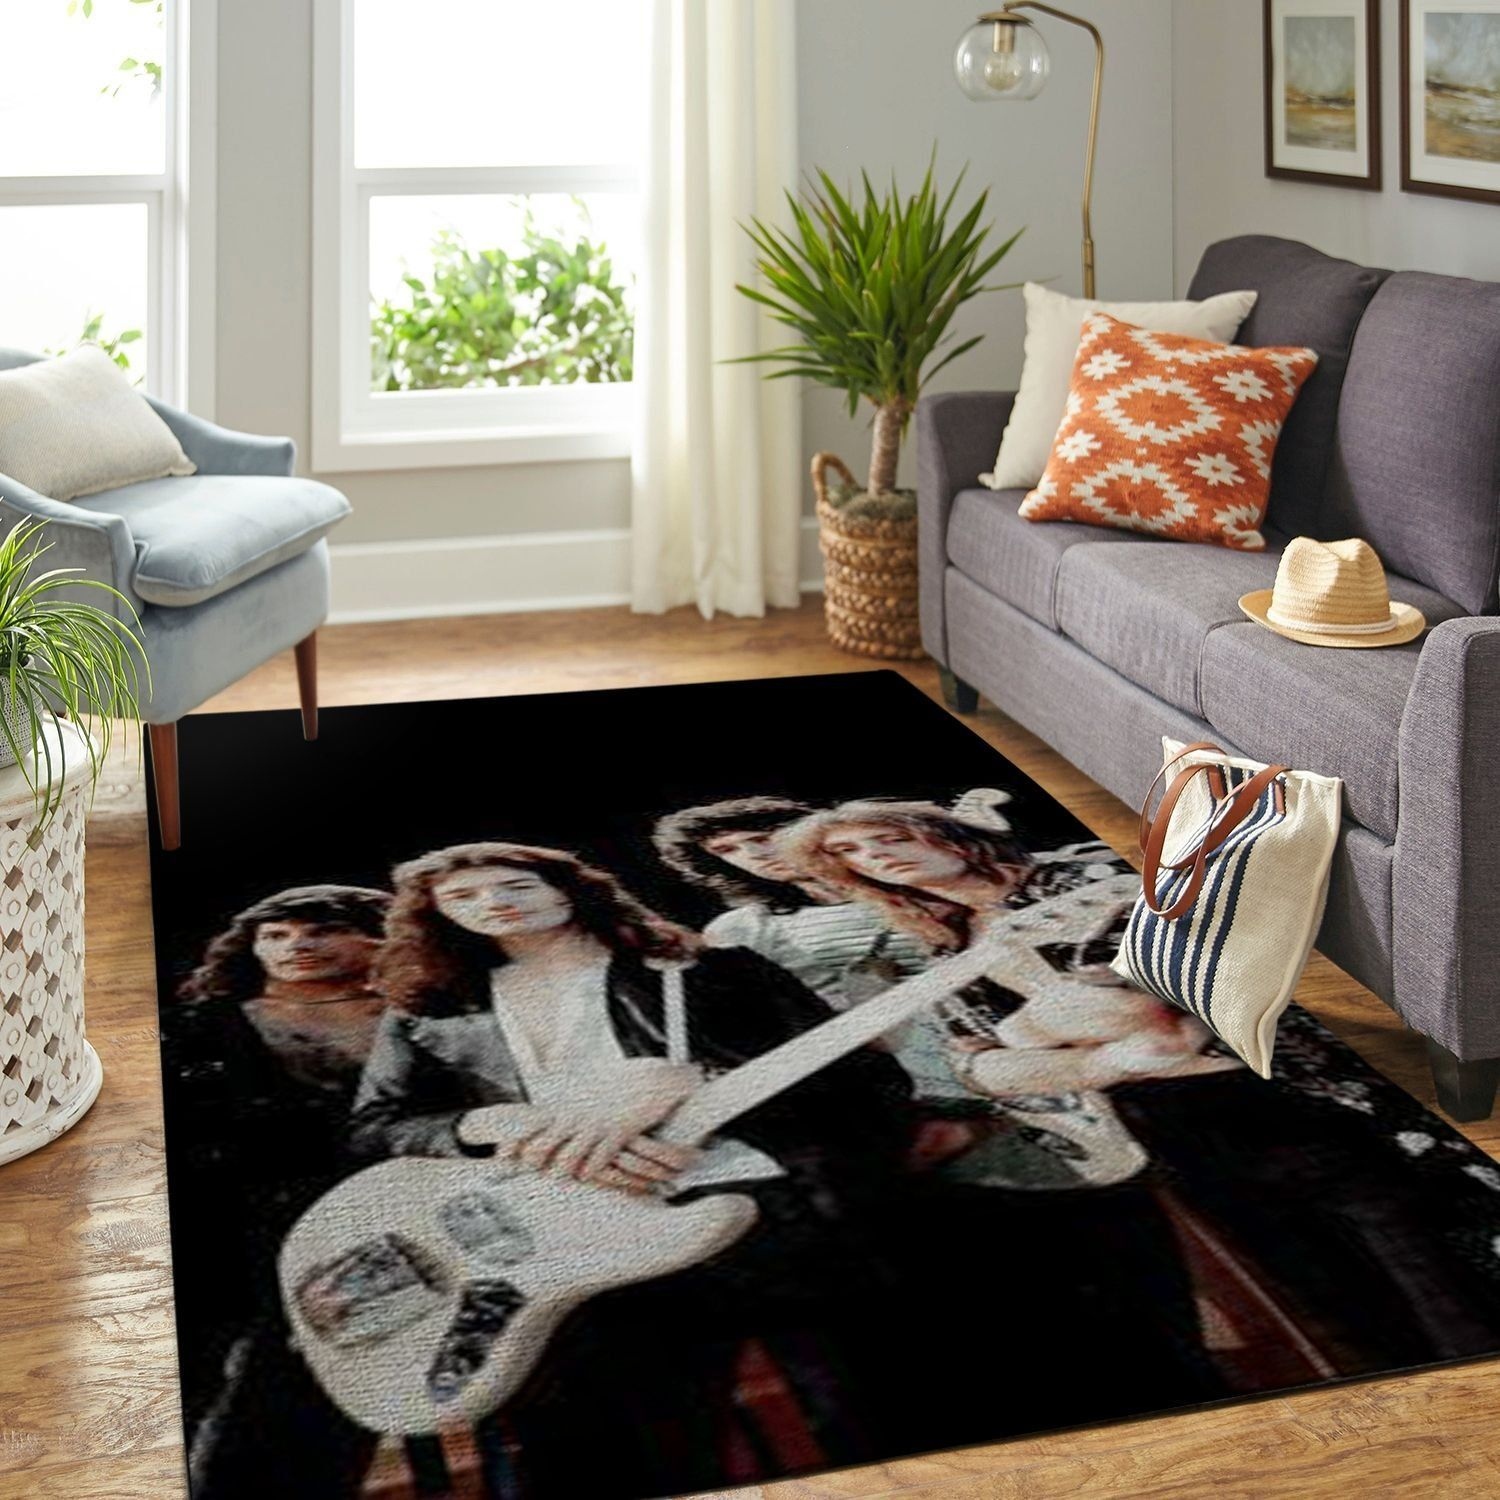 Amazon Queen Band Legend Living Room Area No6488 Rug Amazon Queen House Warming Gifts Queen Band The living room band